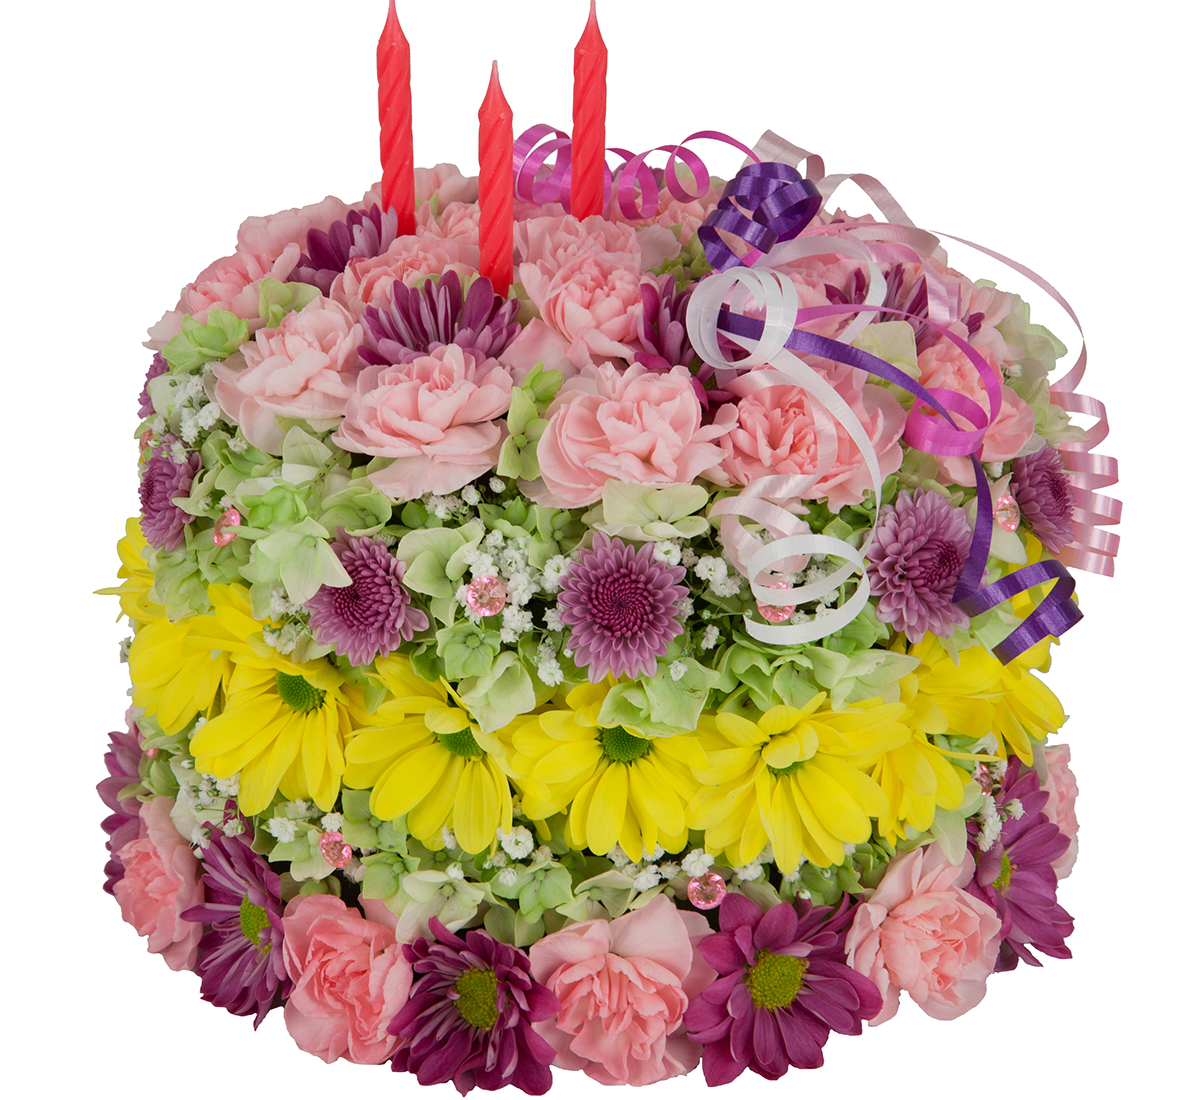 happy birthday flower cake · birthday flowers · canada flowers.ca, Natural flower